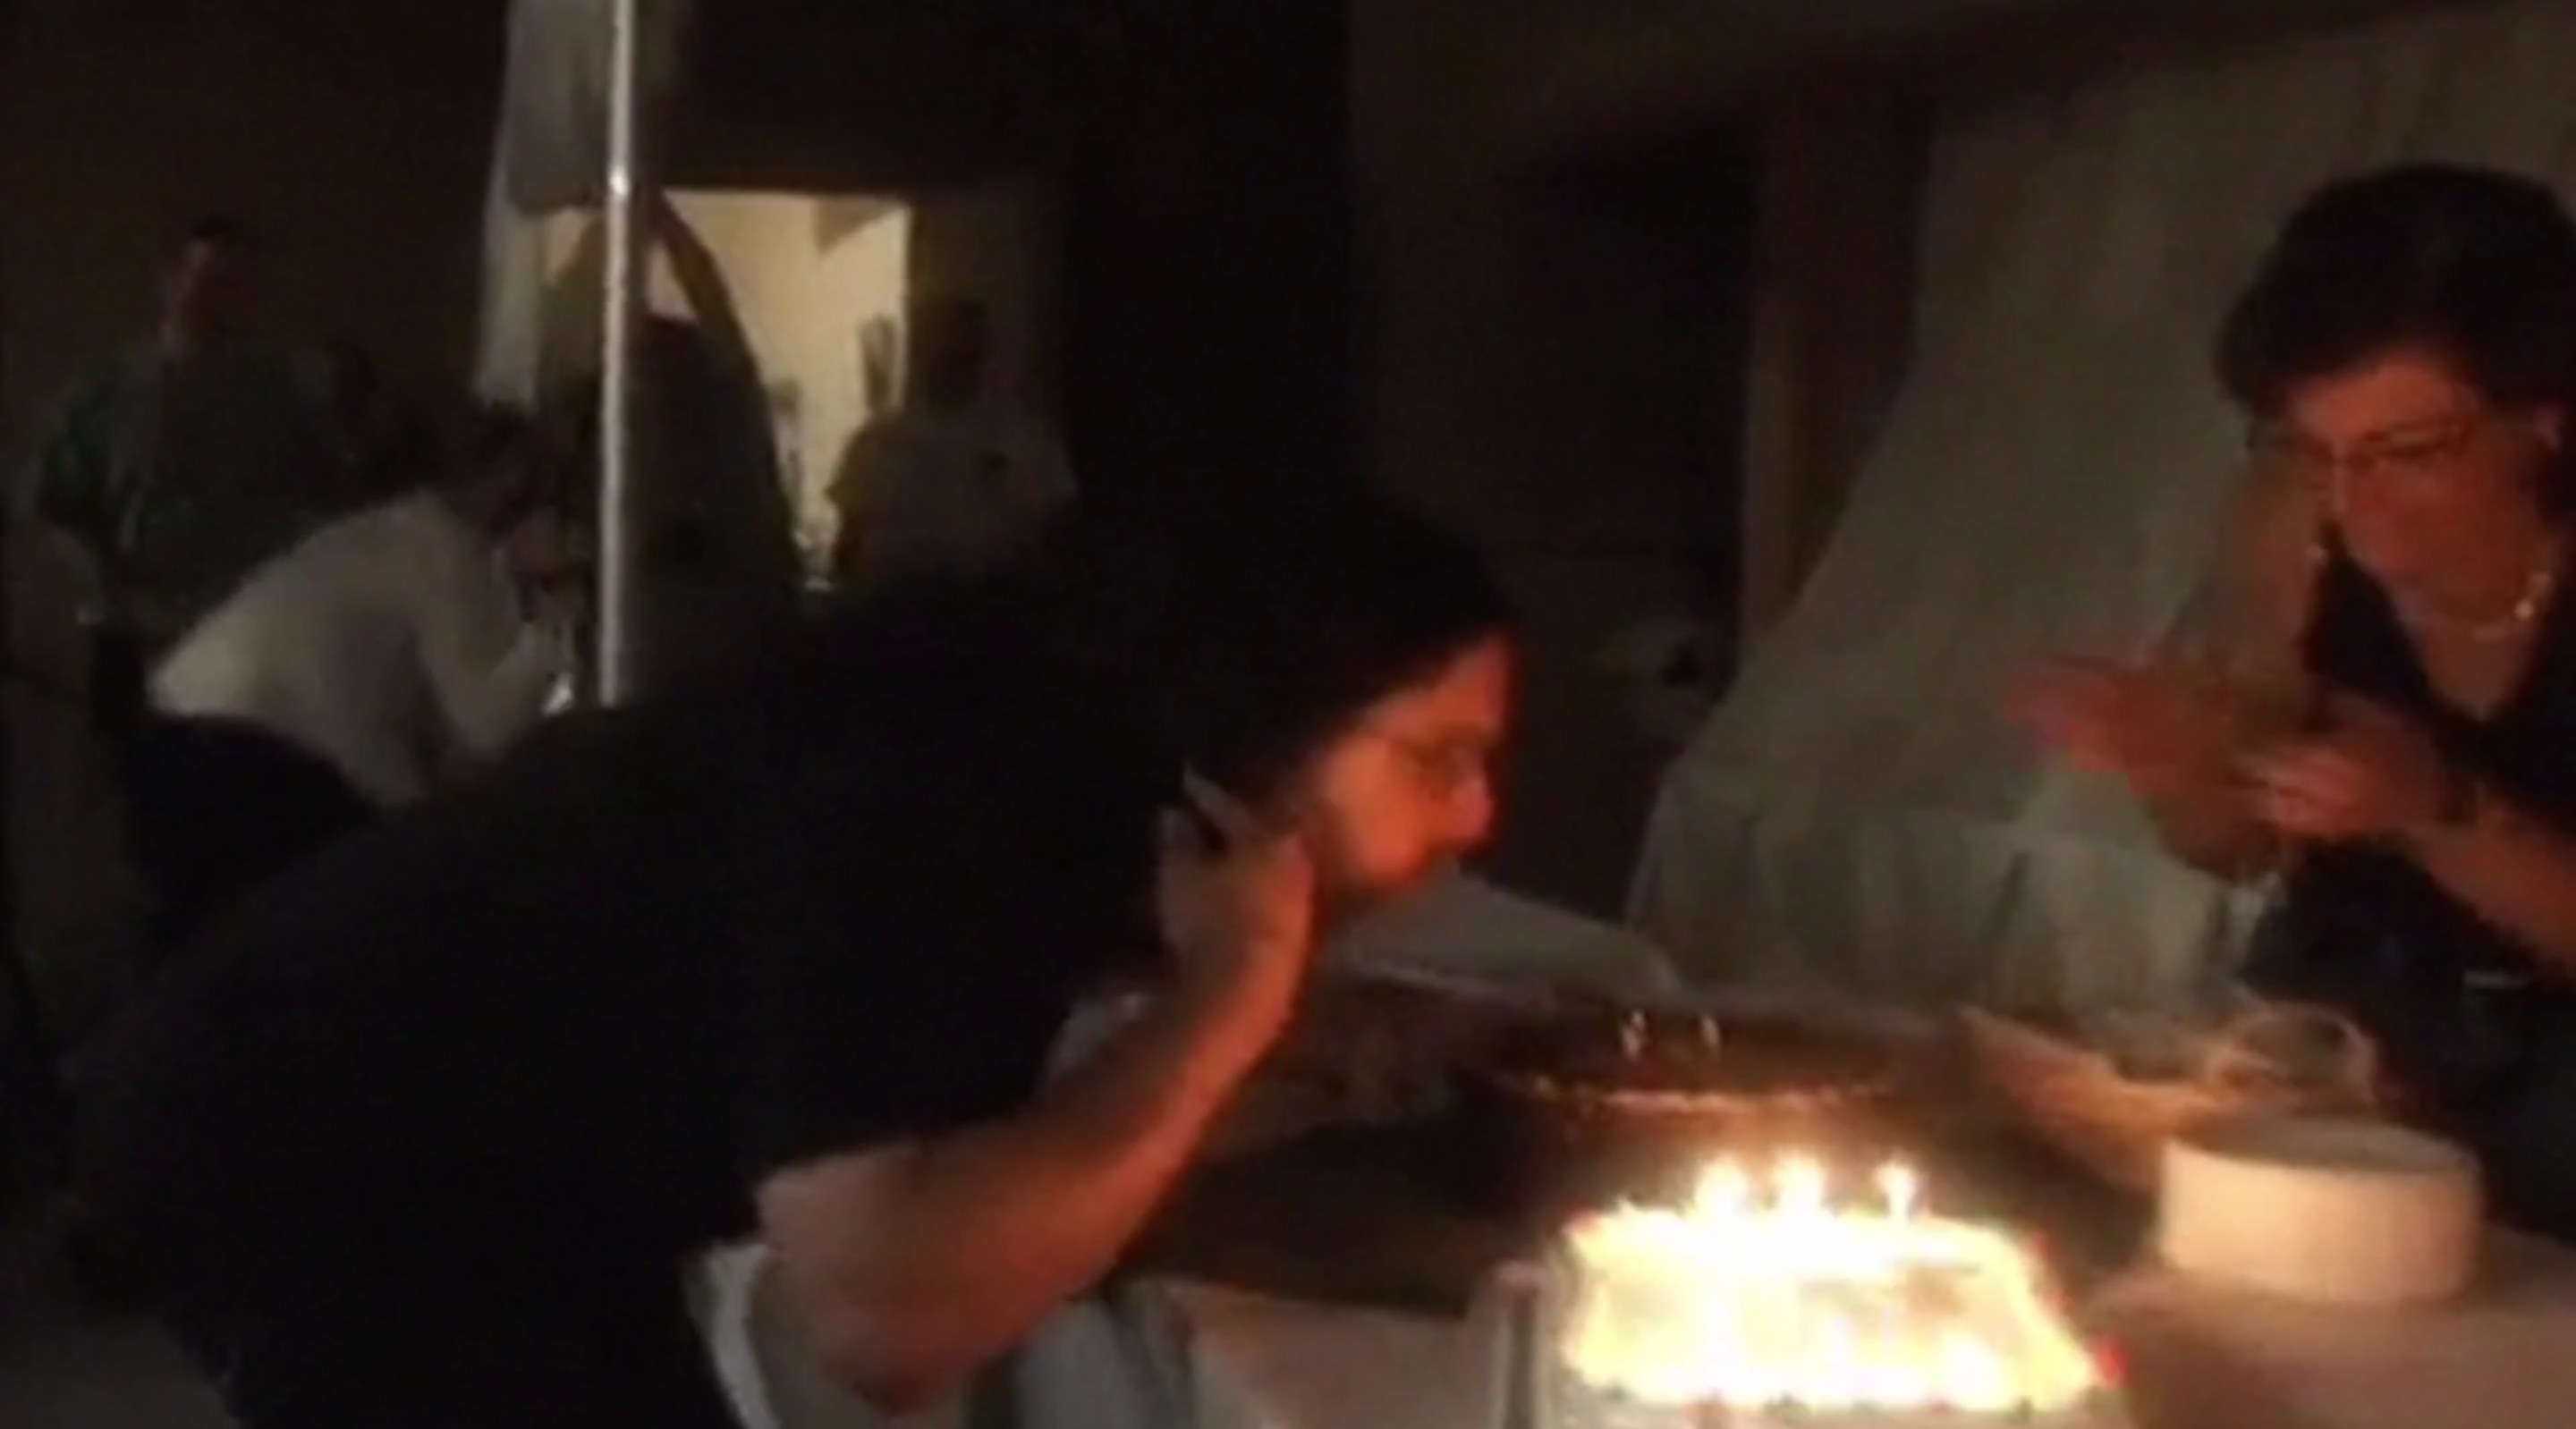 A man and a woman blowing out candles on several cakes